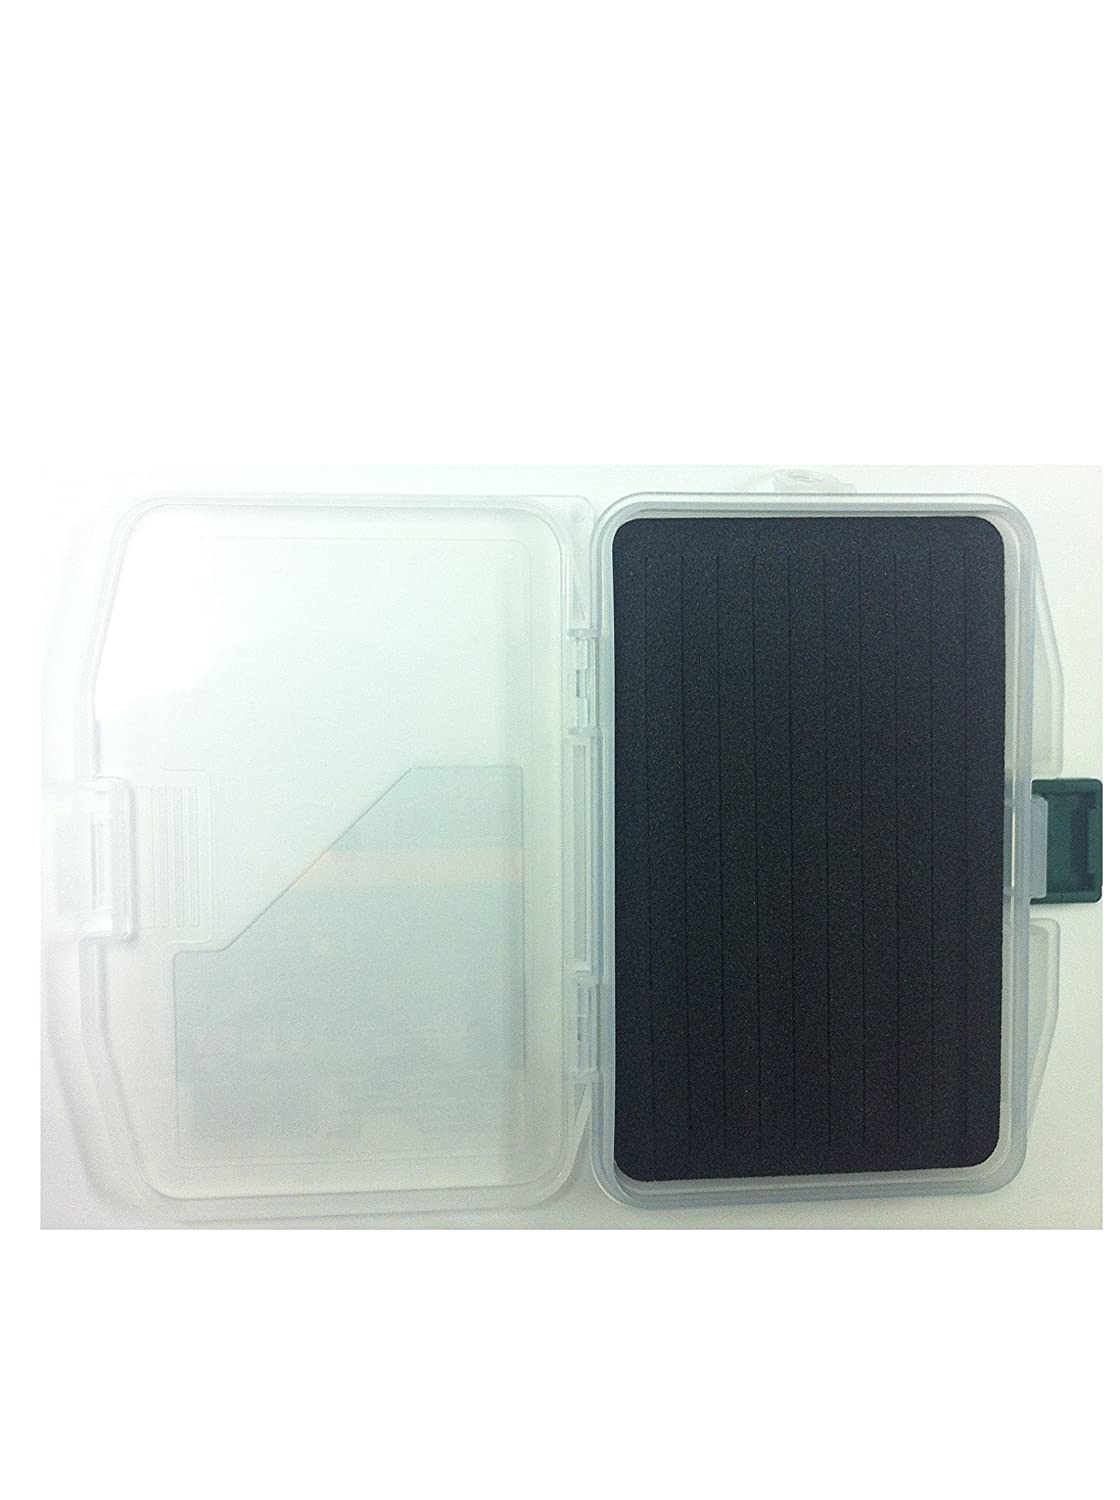 146 x 103 x 23 mm Clear Meiho Slit Form Case F-9 1479